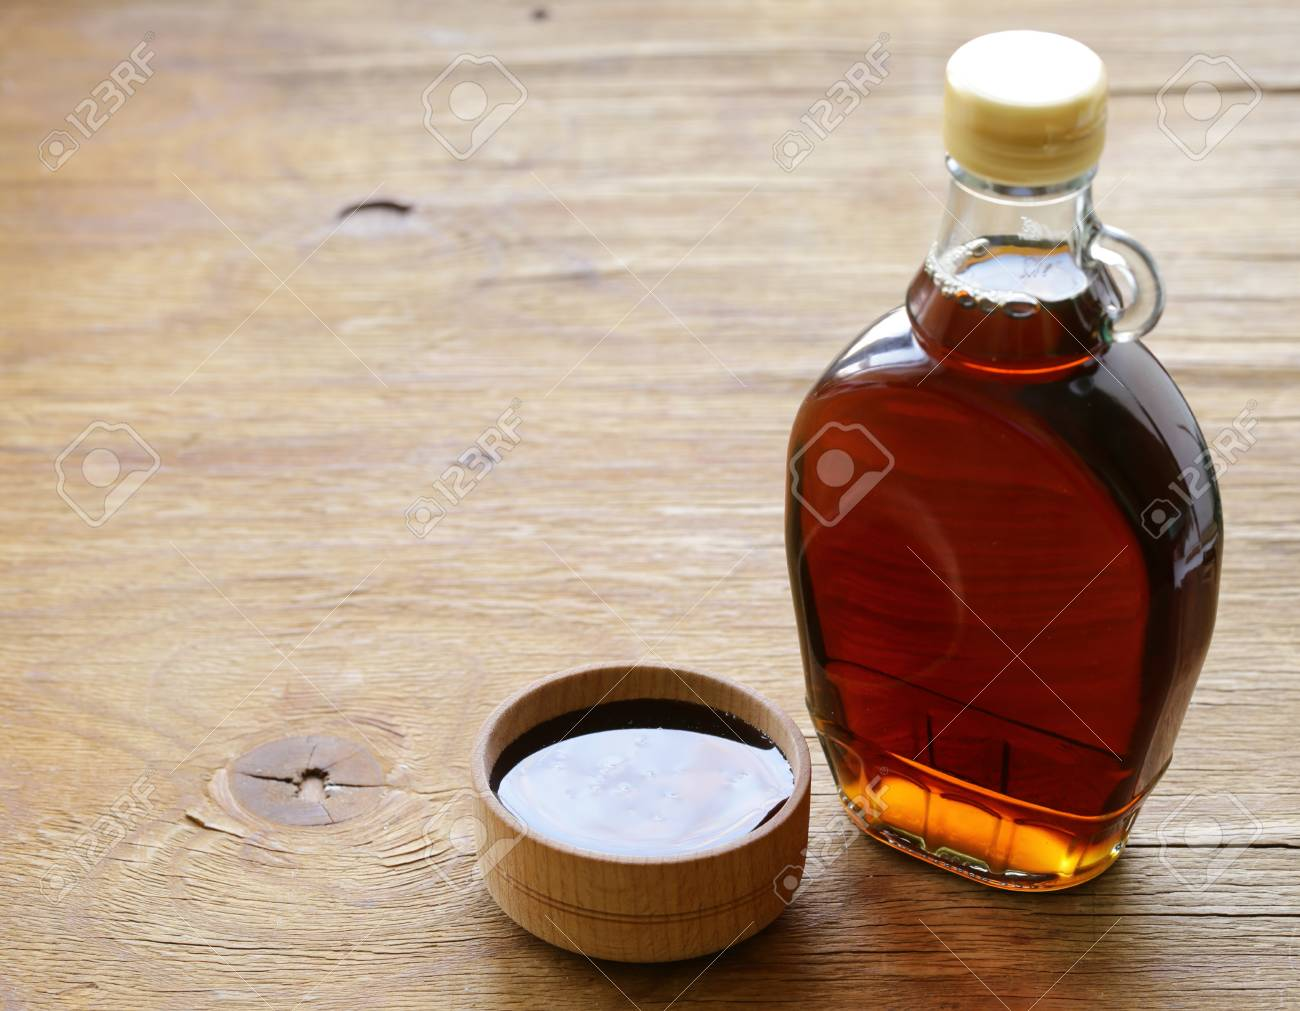 260d6b27849 Maple syrup in a glass bottle - sweet dessert sauce Stock Photo - 95393627